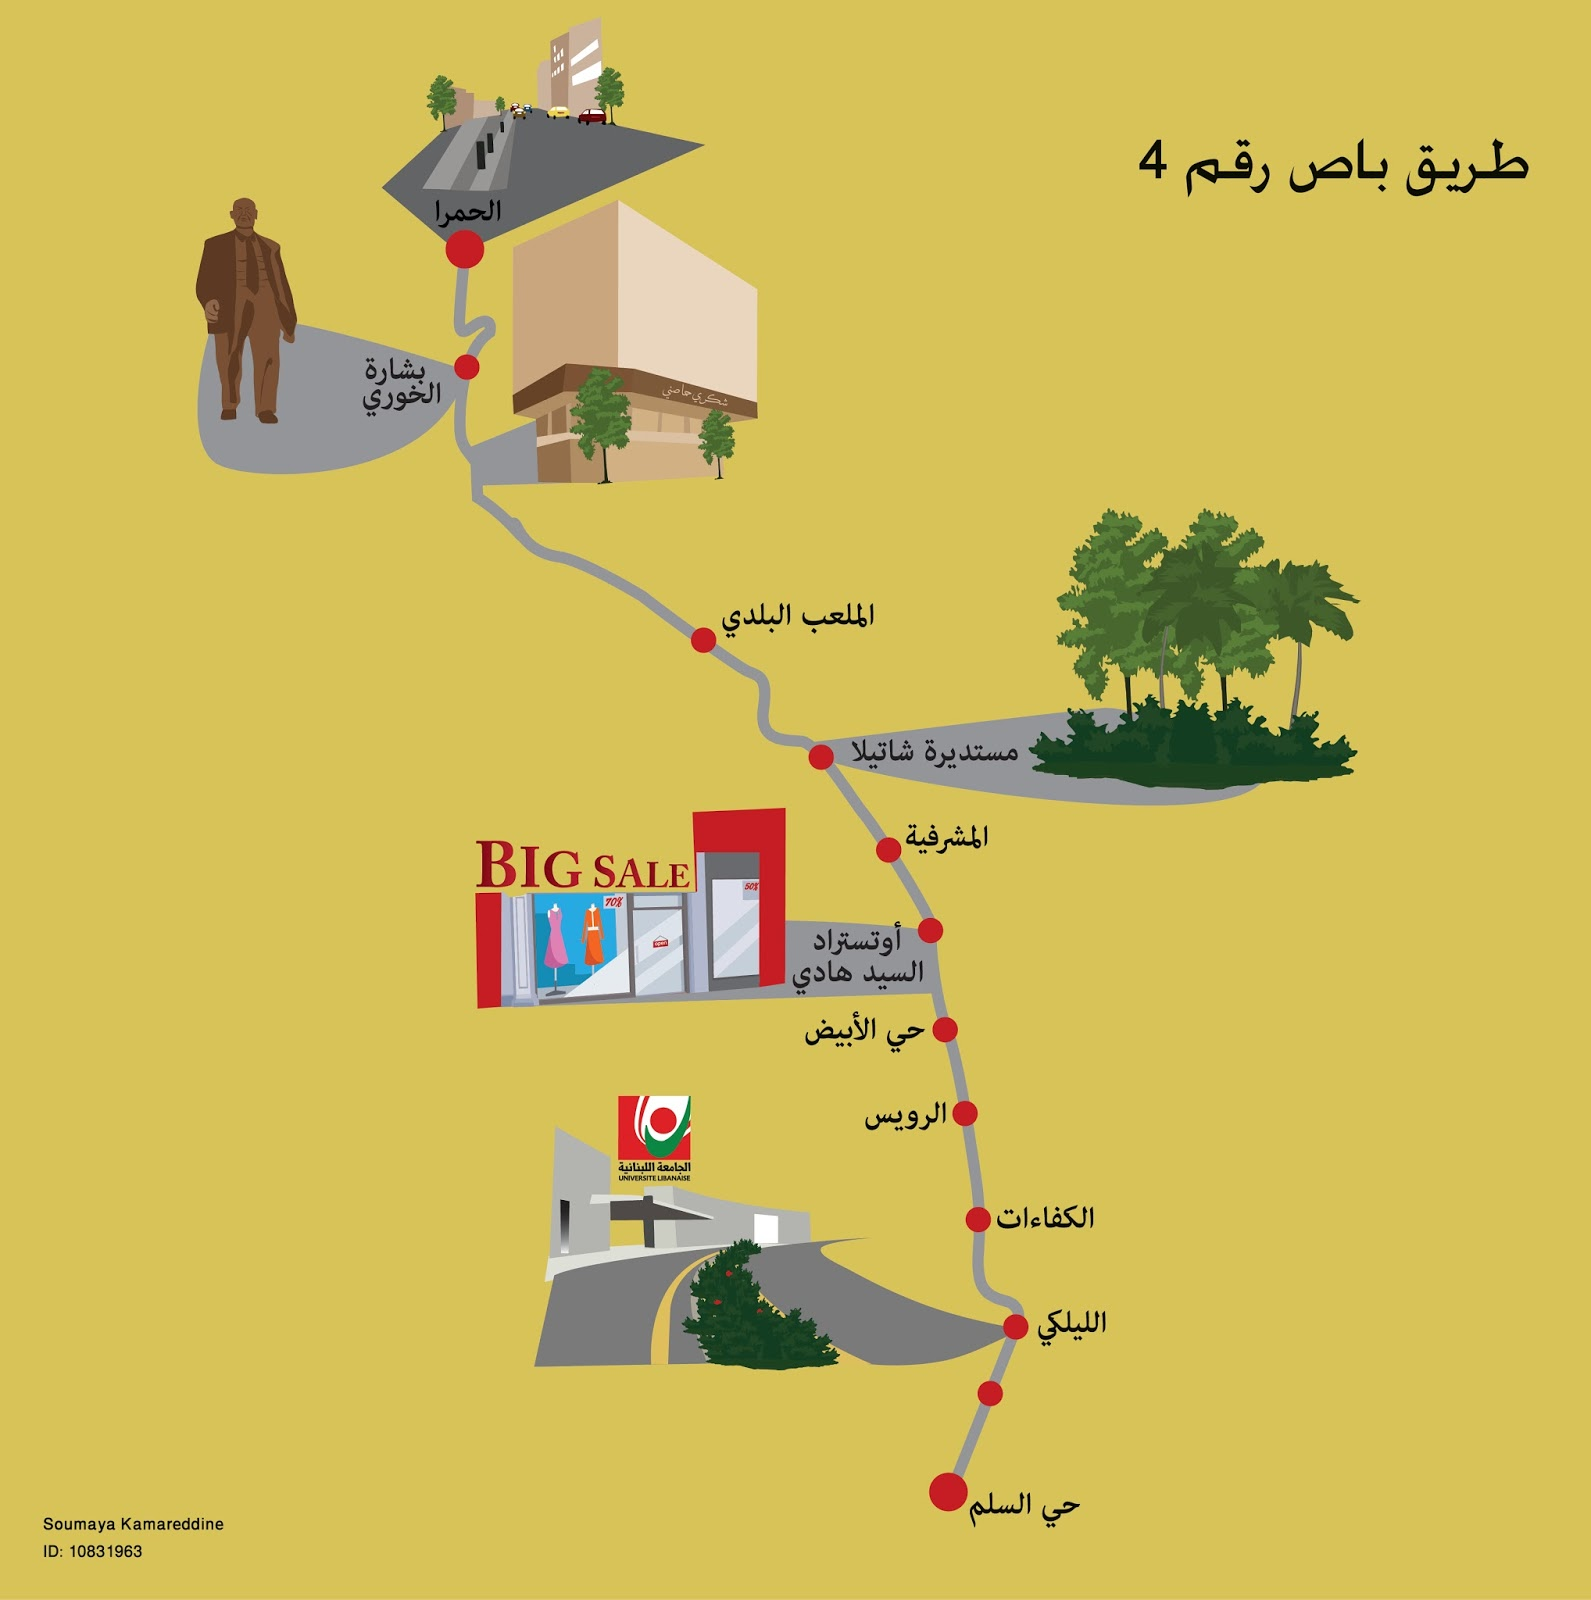 bus map project lebanon Somaya Kamareddine